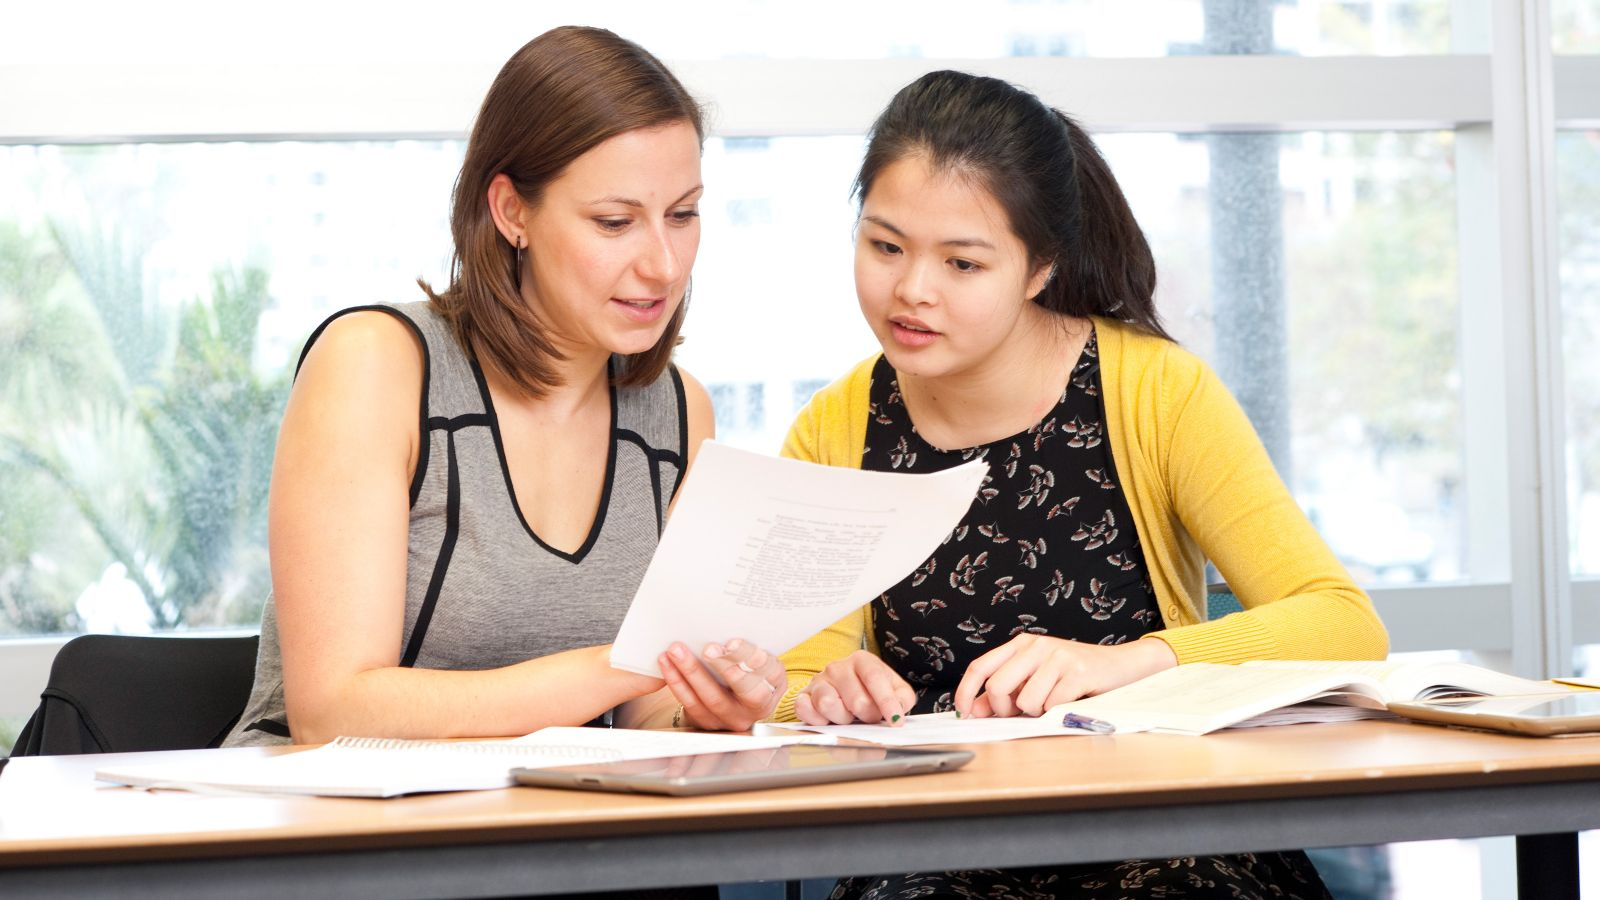 A lecturer and student reviewing a piece of work together